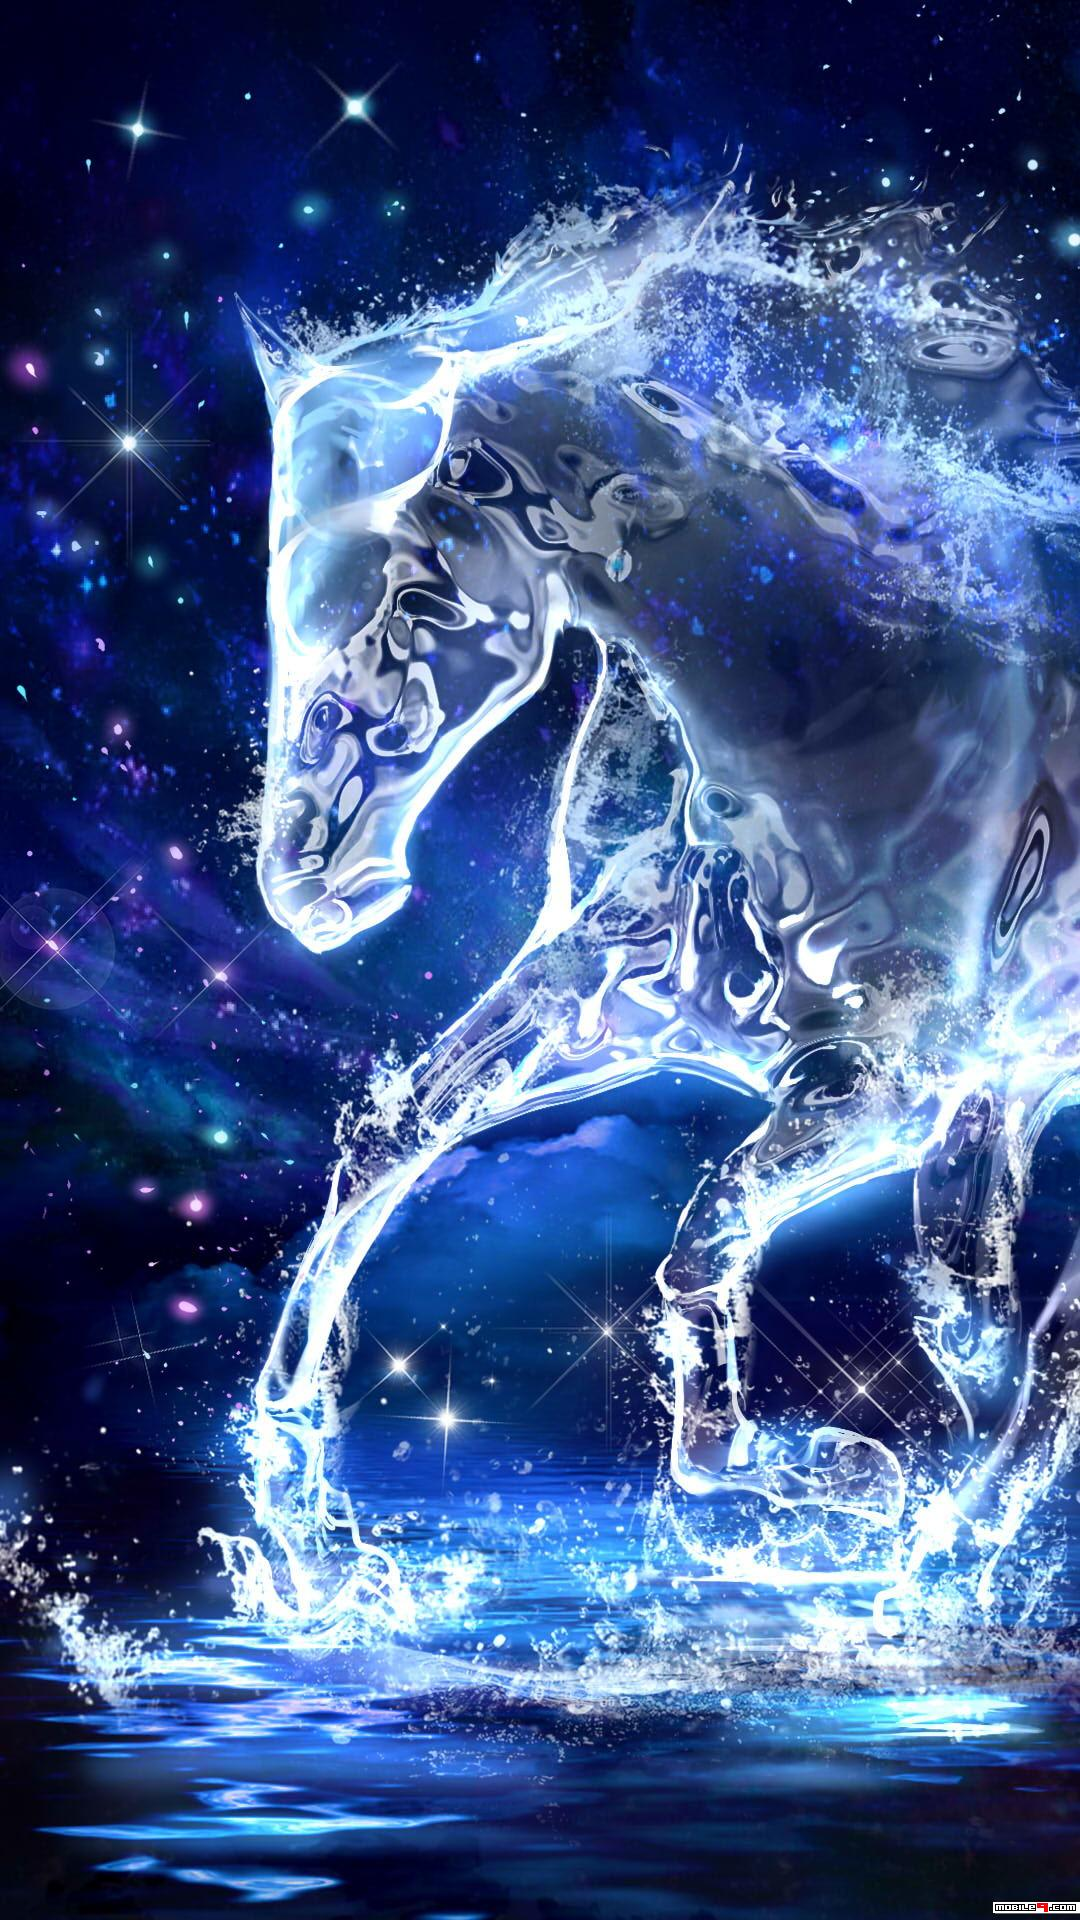 Fire Horse Live Wallpaper Posted By Ethan Sellers